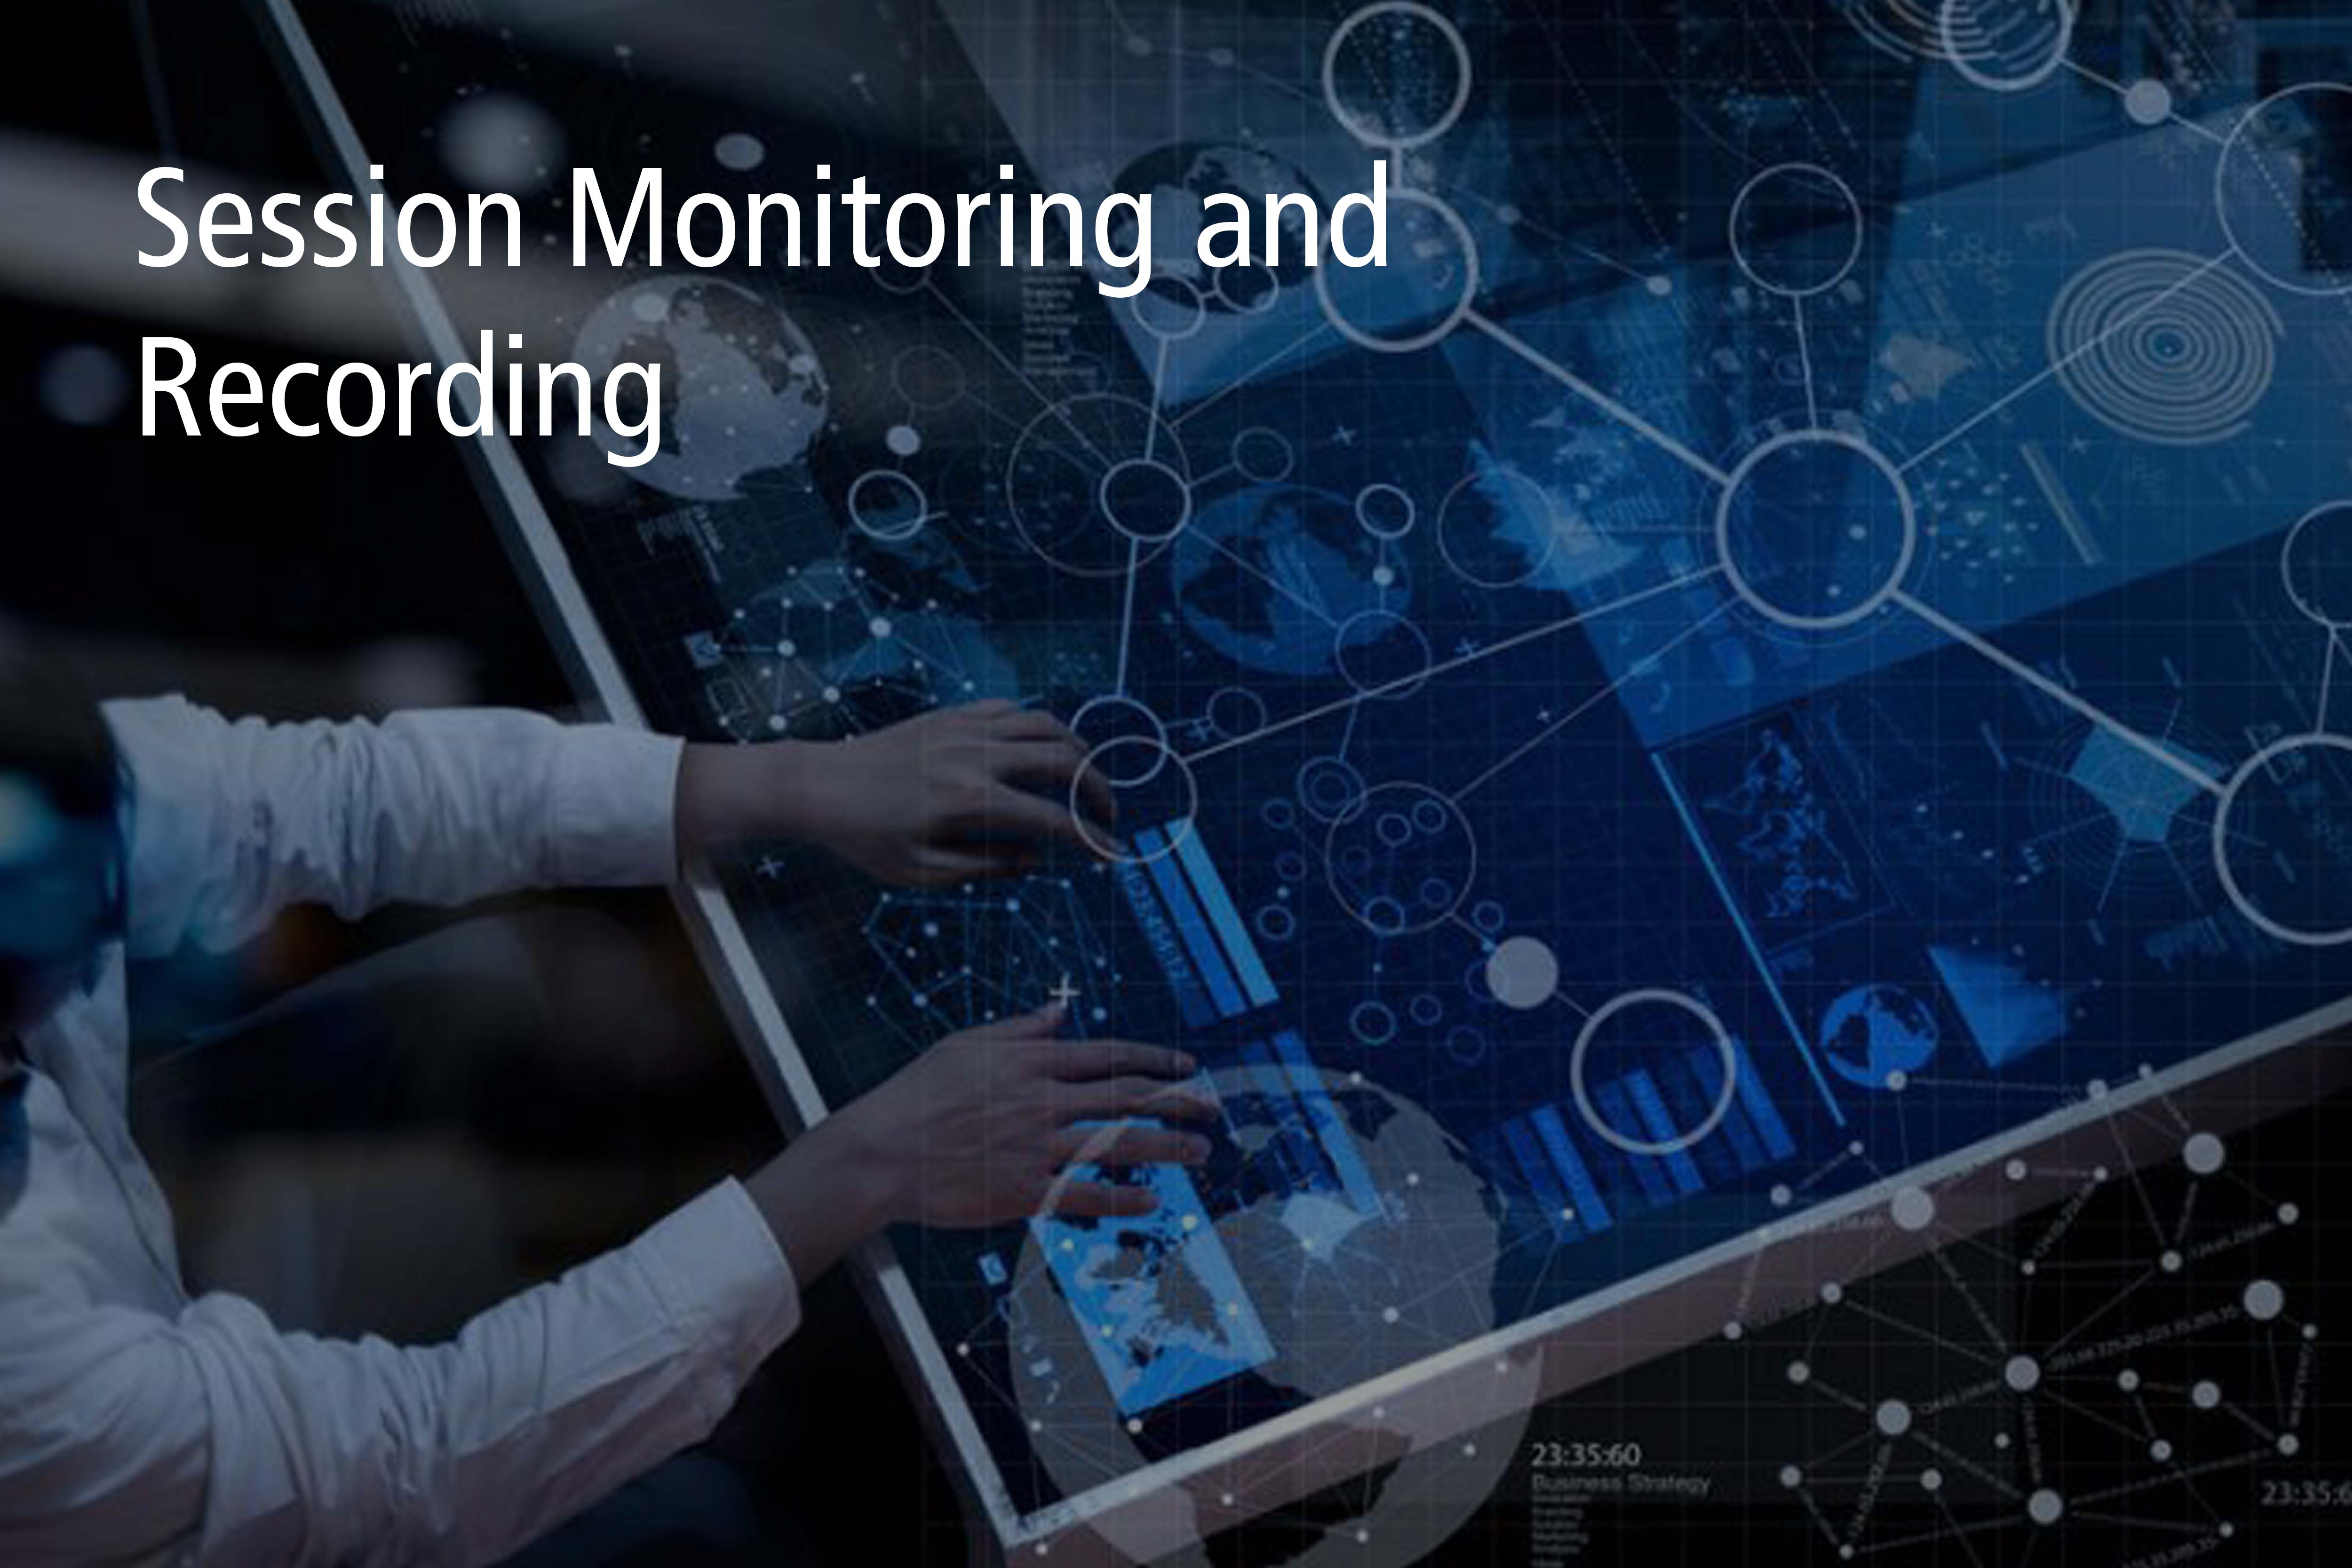 Session Monitoring and Recording